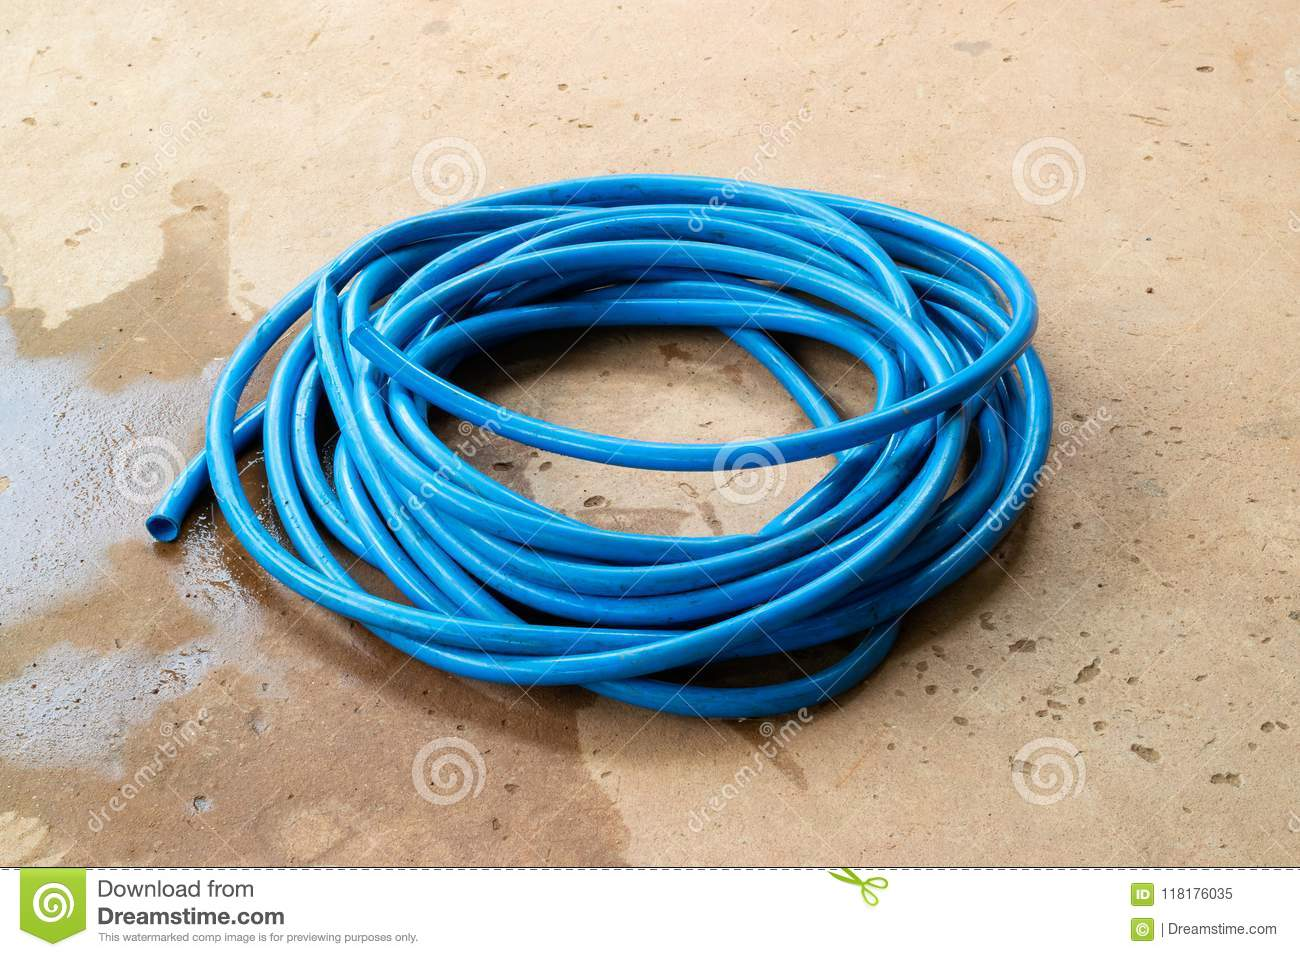 Download comp & The Blue Water Hose Lay Down On The Floor Stock Image - Image of ...